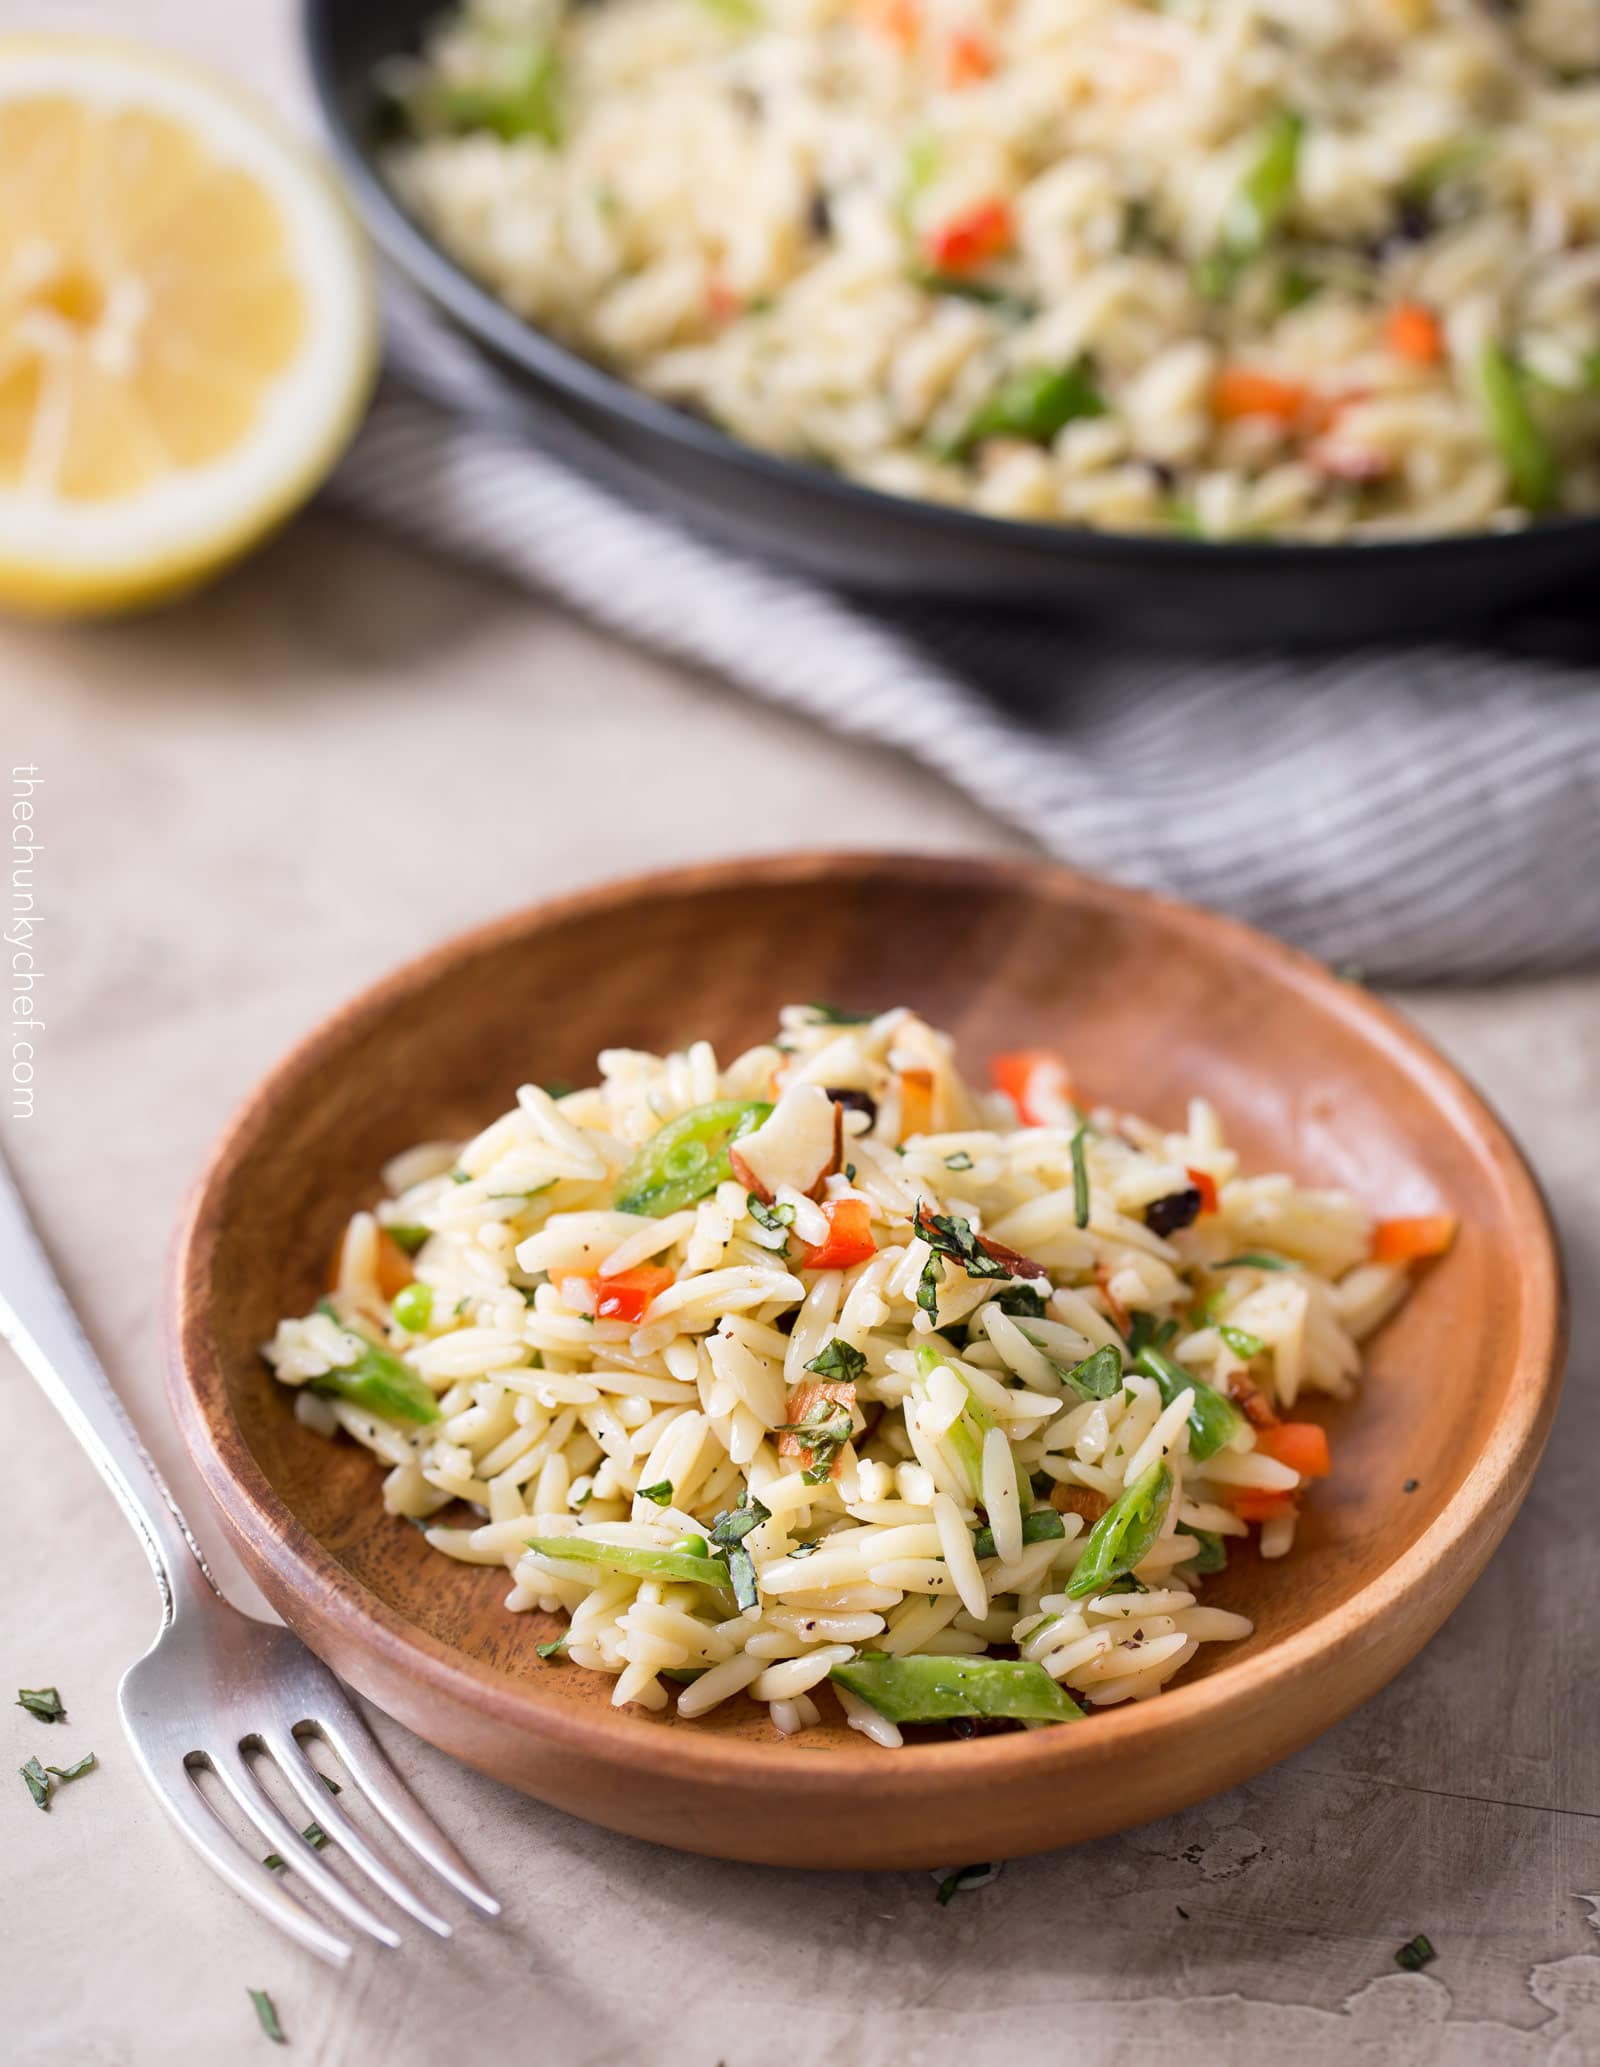 Copycat Piada Orzo Salad   This orzo salad is a copycat of the one sold at Piada Italian Street Food... it's crunchy, a little sweet, a little savory, and always a hit at parties!   http://thechunkychef.com